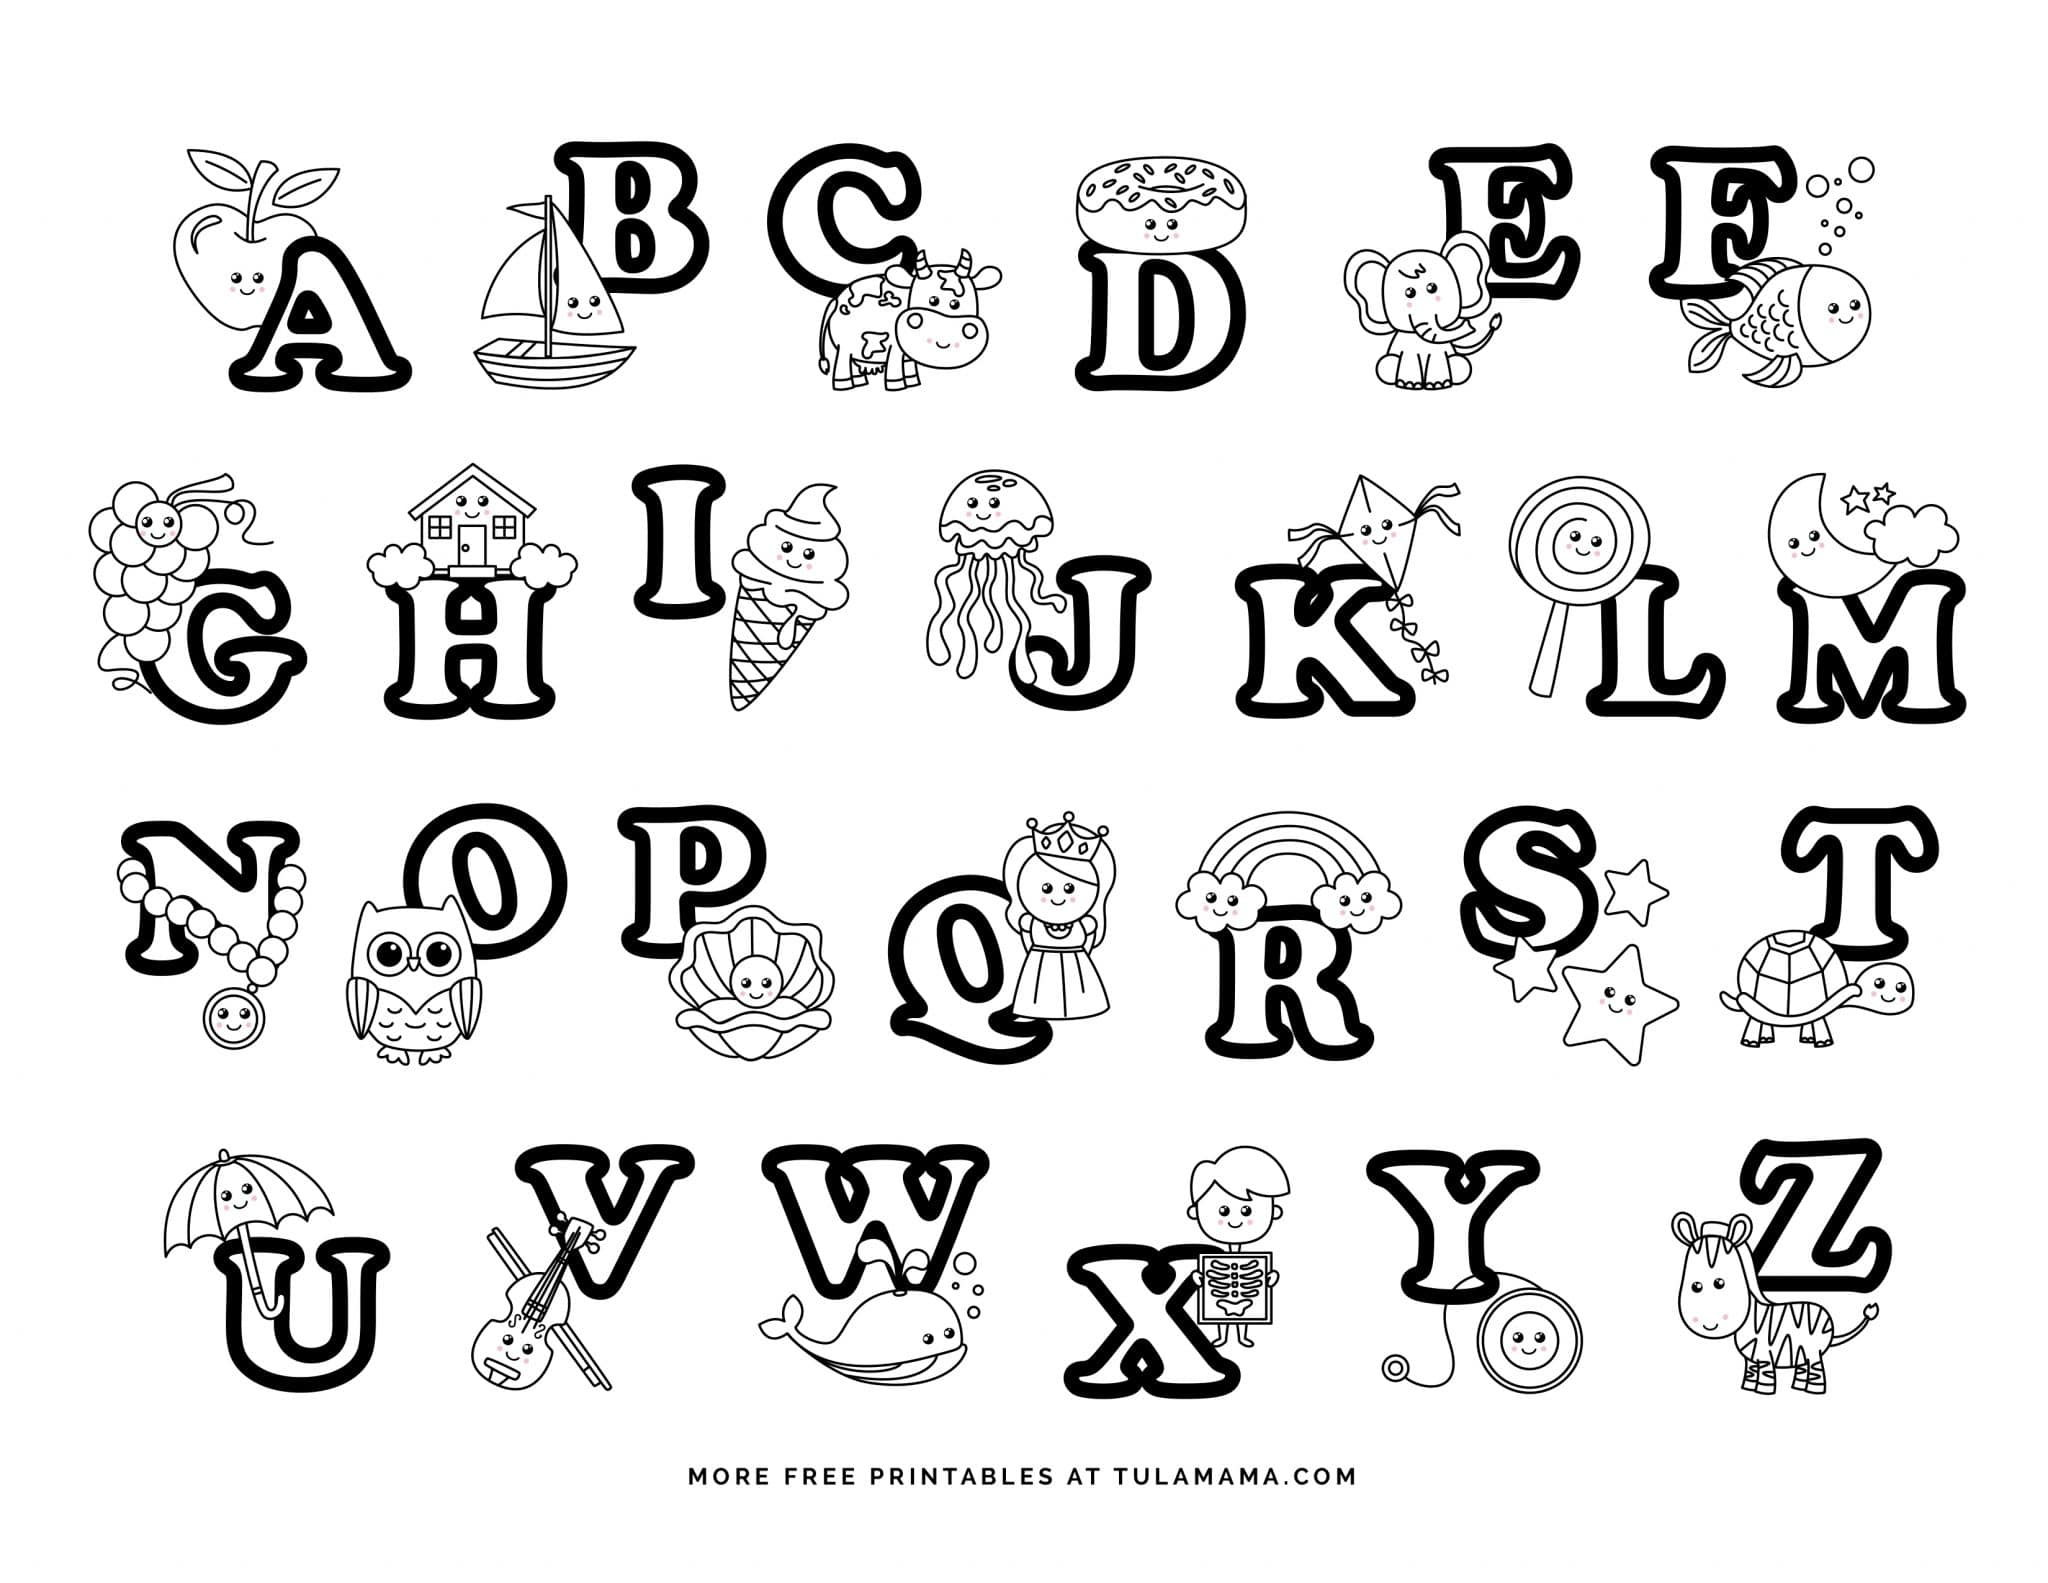 colouring pictures of alphabets fun coloring pages alphabet coloring pages pictures of alphabets colouring